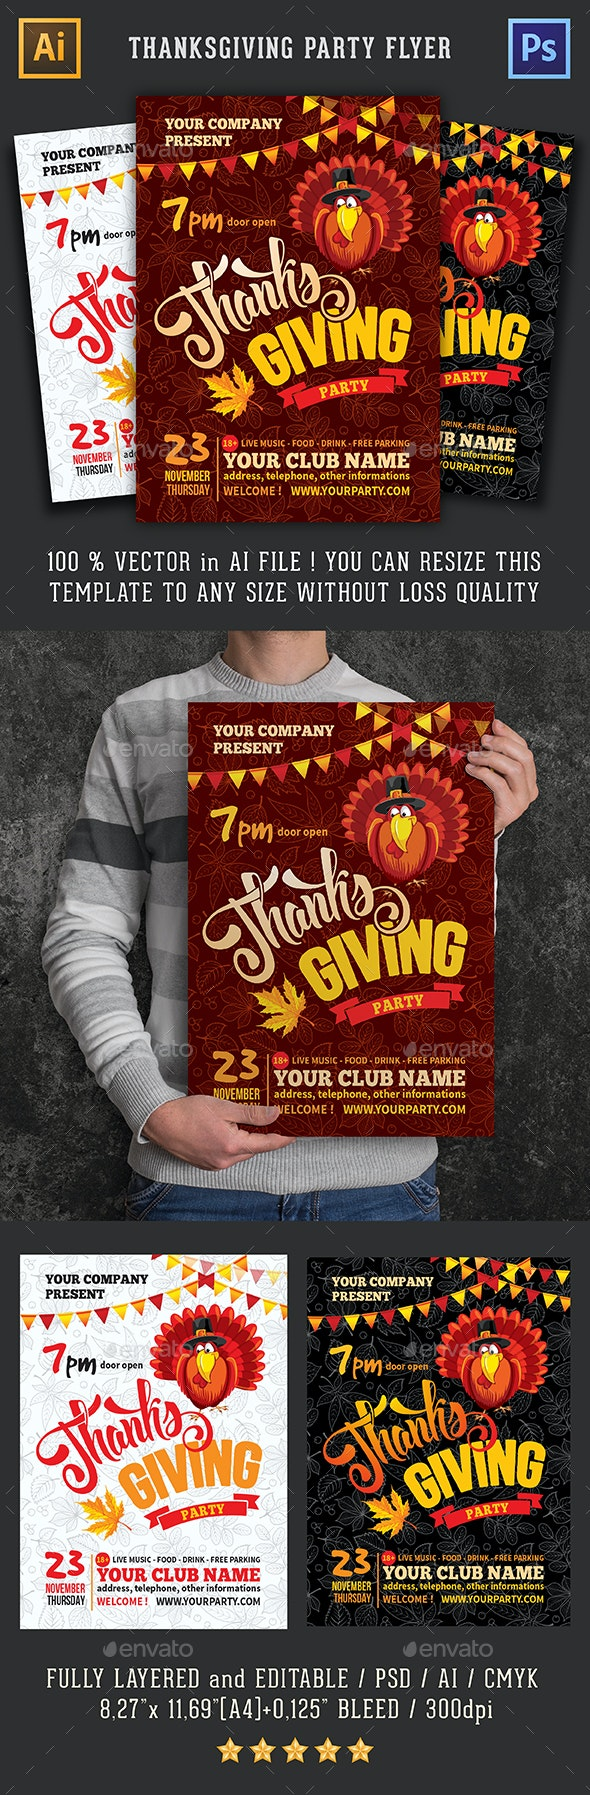 Template For Thanksgiving Party Flyer - Clubs & Parties Events